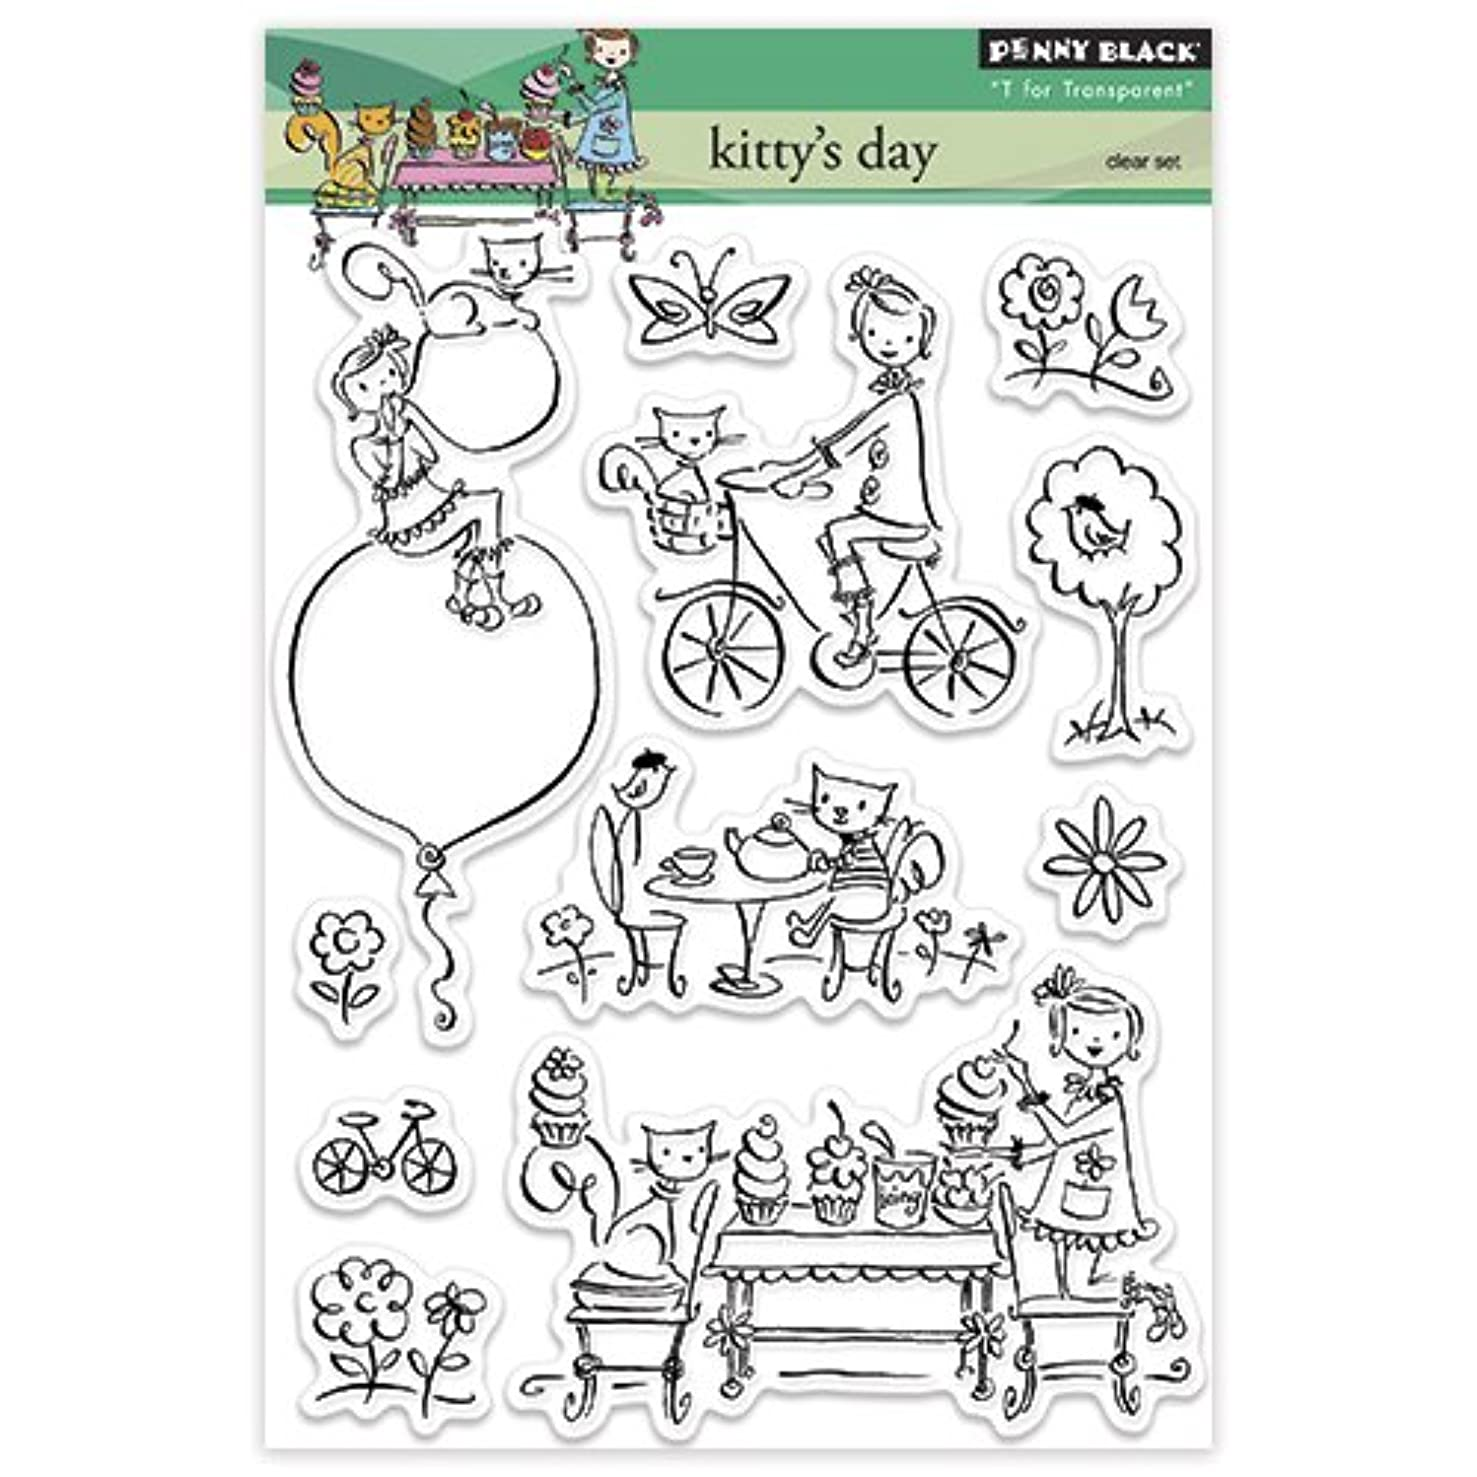 Penny Black Decorative Rubber Stamps, Kitty's Day